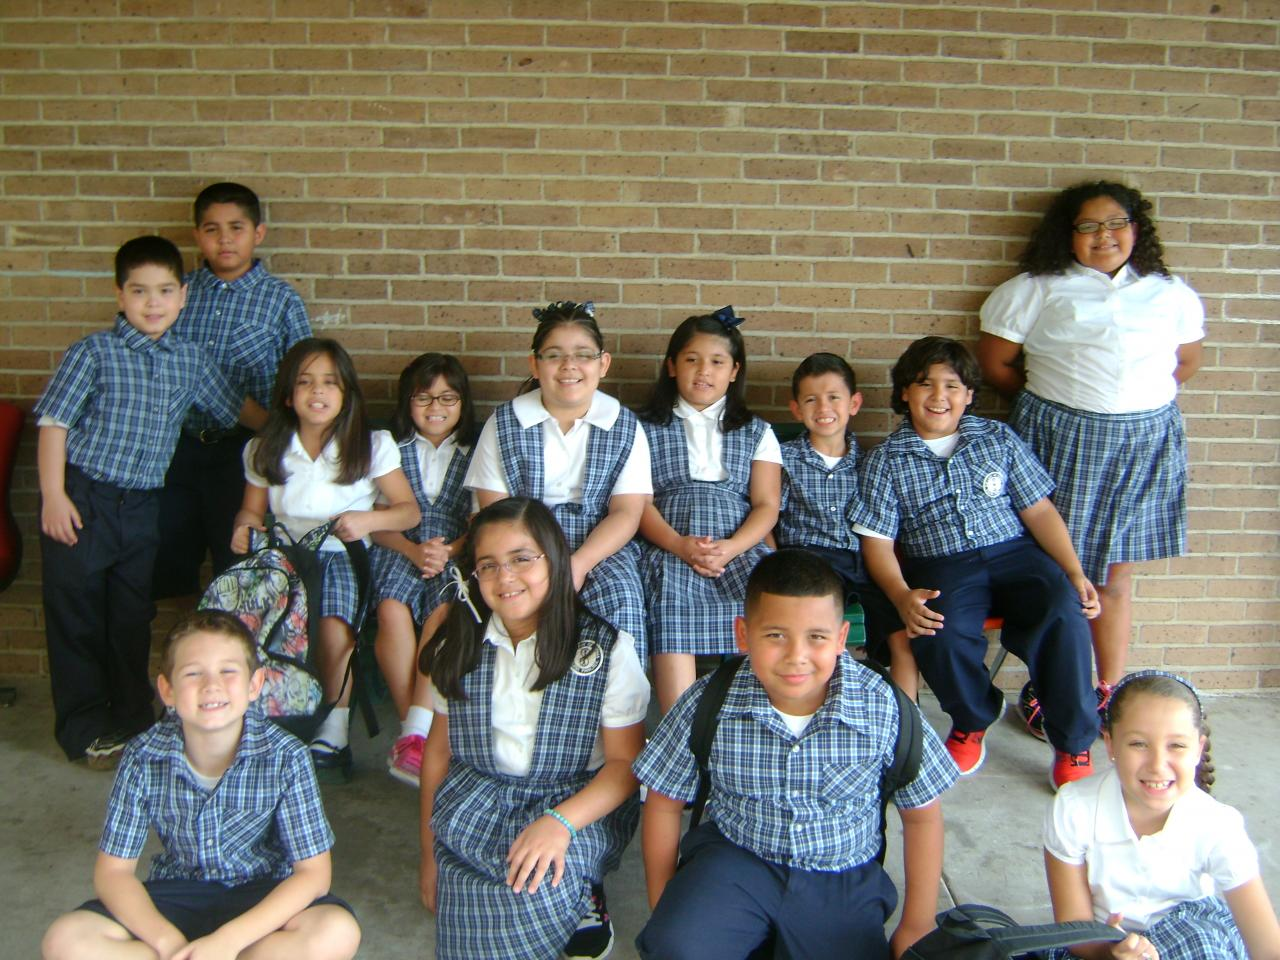 Our Lady of Fatima Catholic School